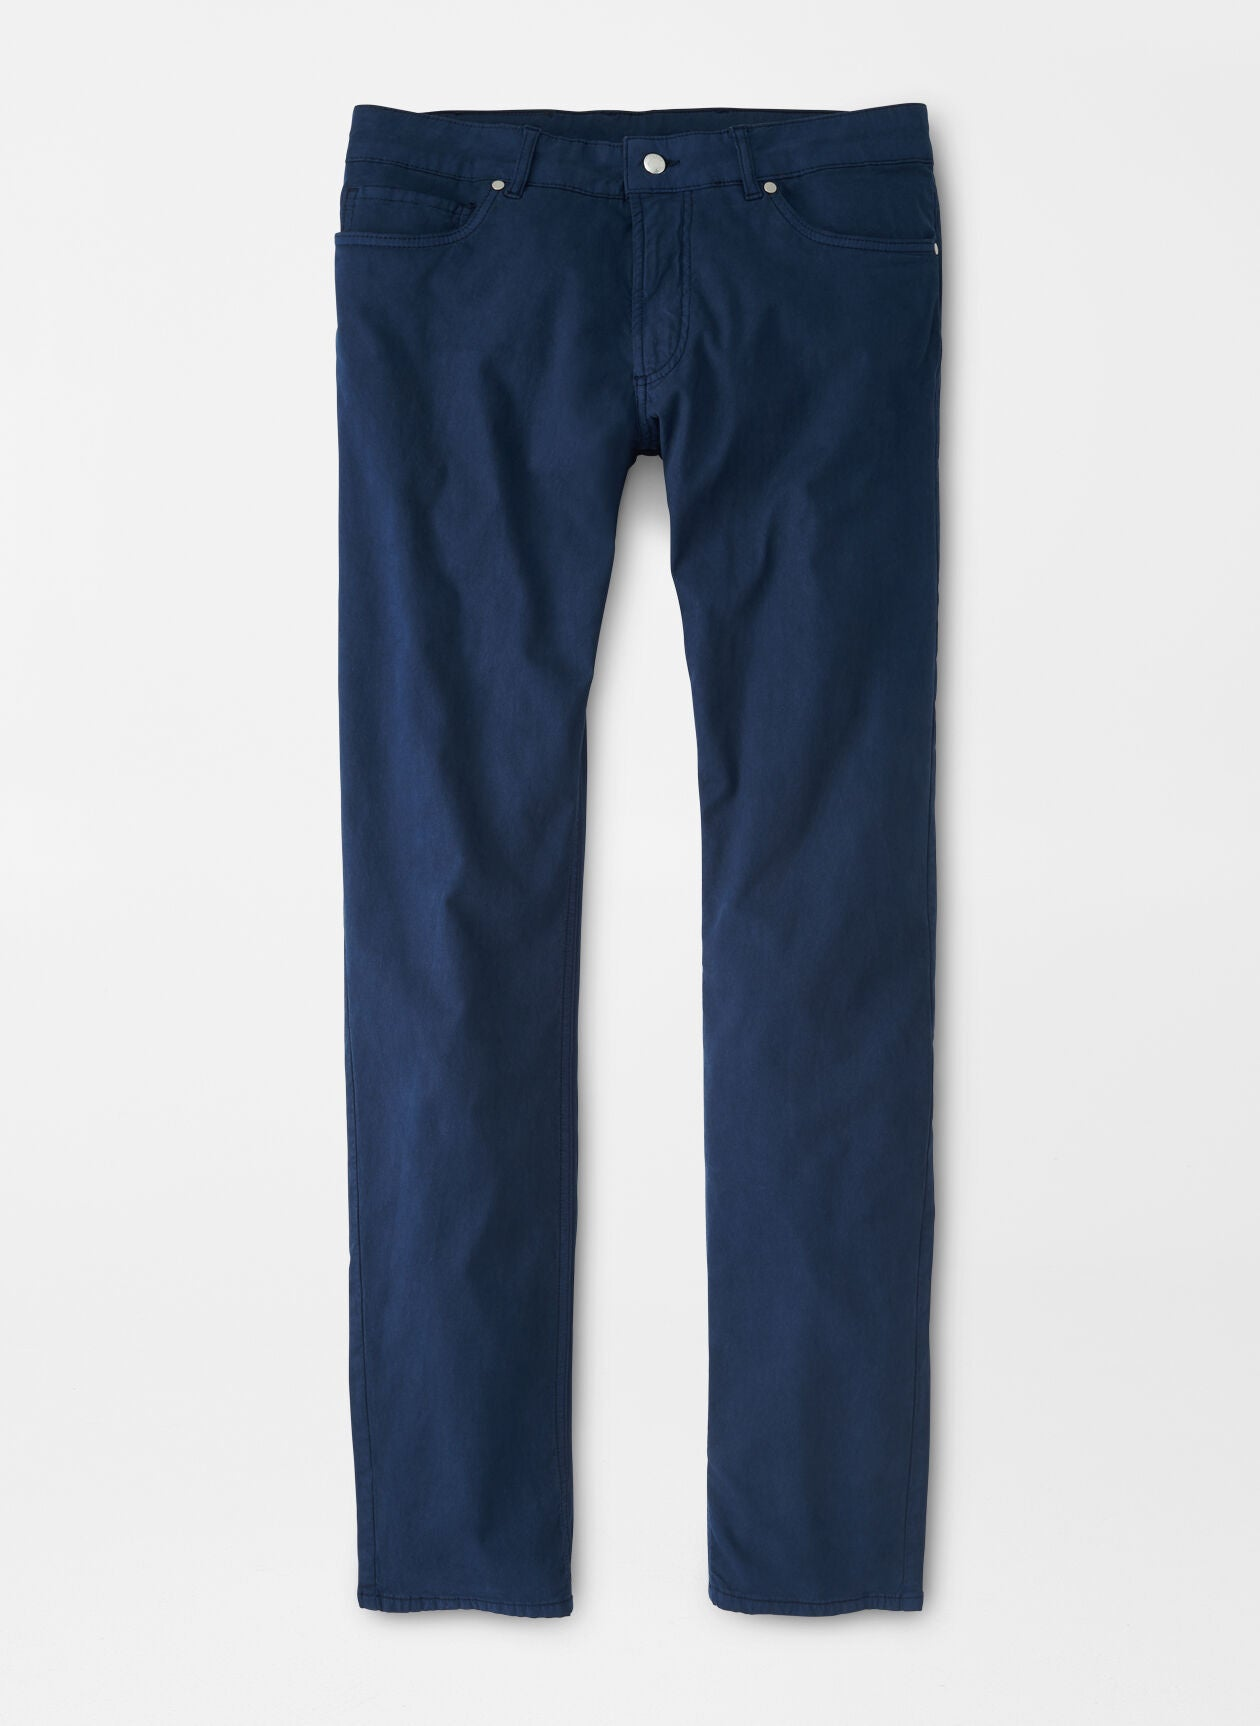 PETER MILLAR FIVE POCKET TROUSER - BARCHETTA